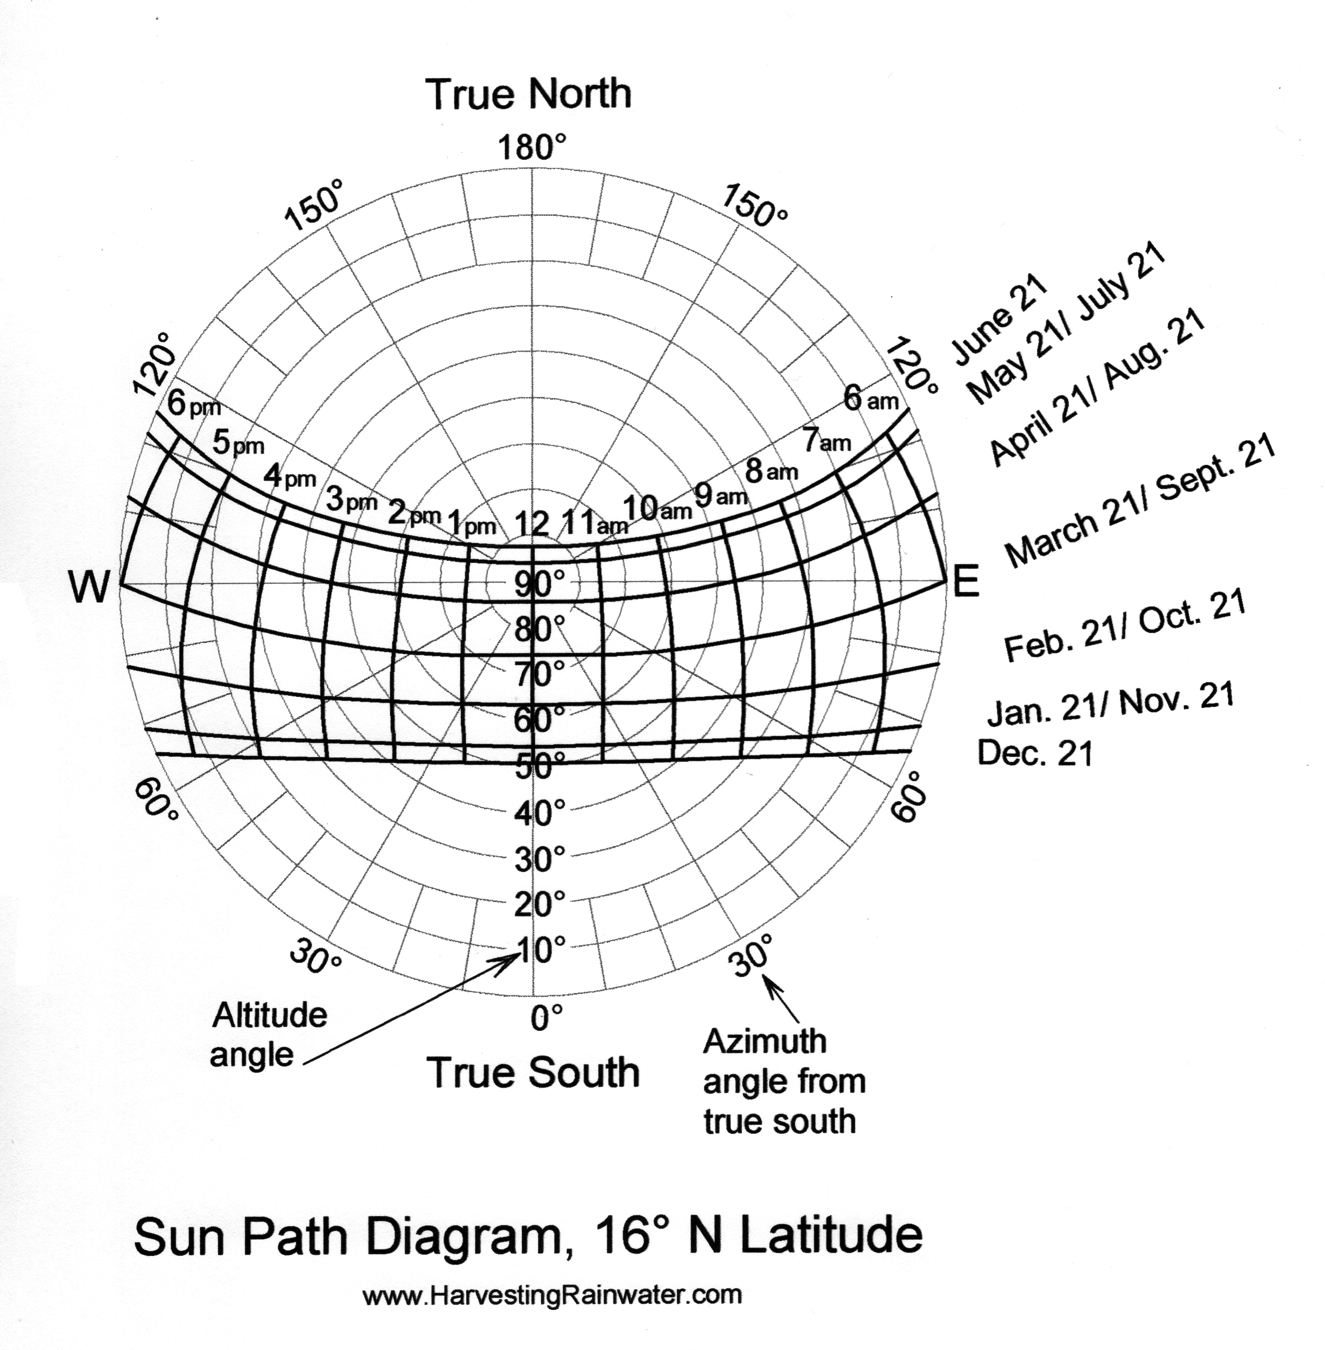 Sun Path Diagram 16o N Latitude